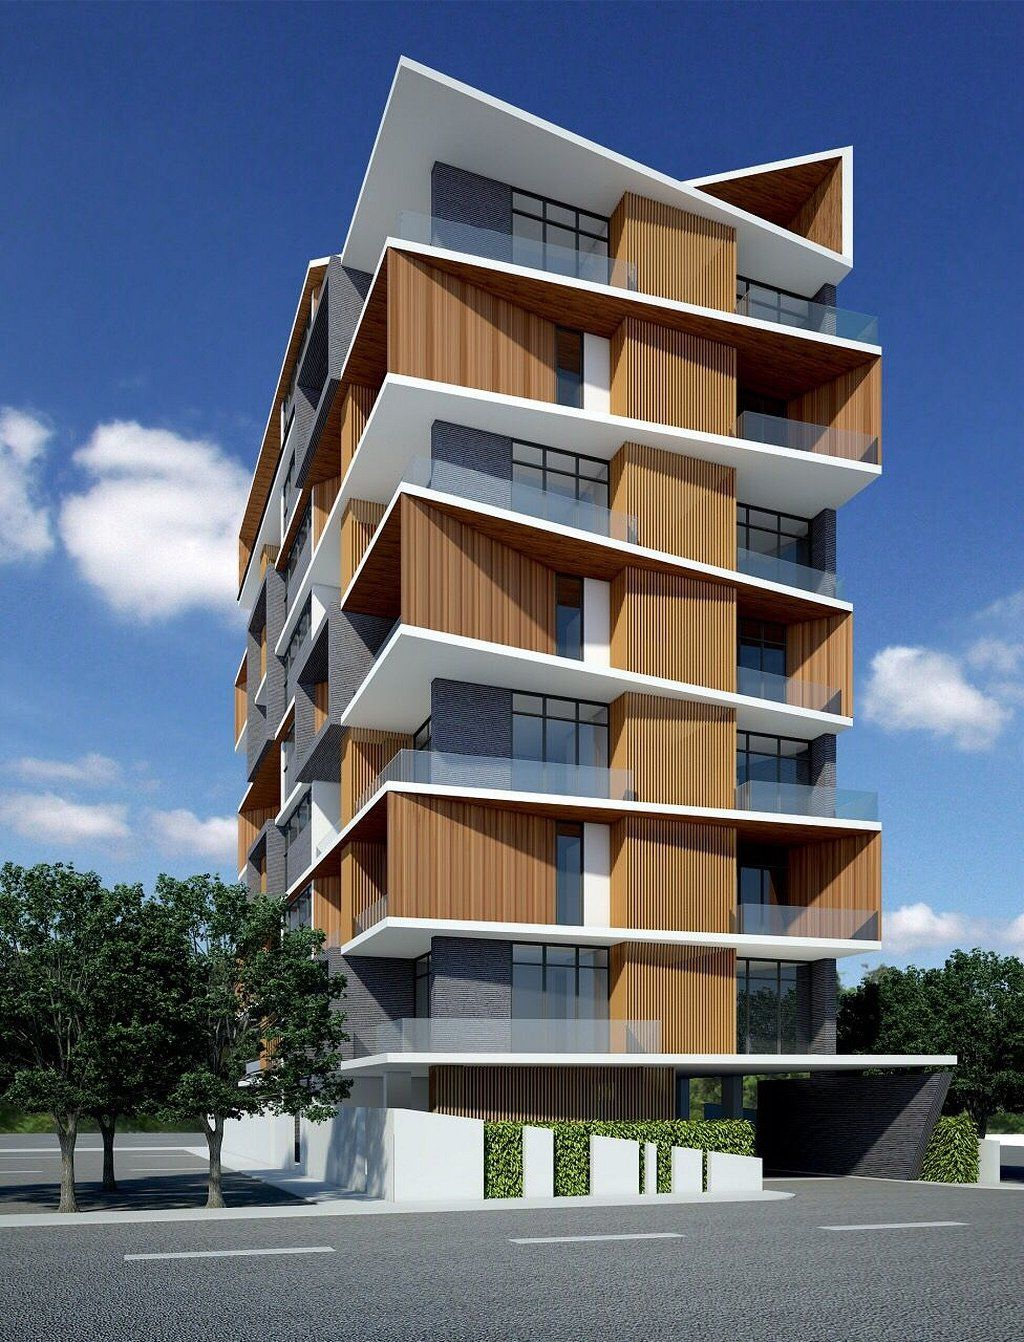 46 Modern Architecture Building Apartments Https Www Mobmasker Com Architecture Build Modern Architecture Building Modern Architecture Apartment Architecture